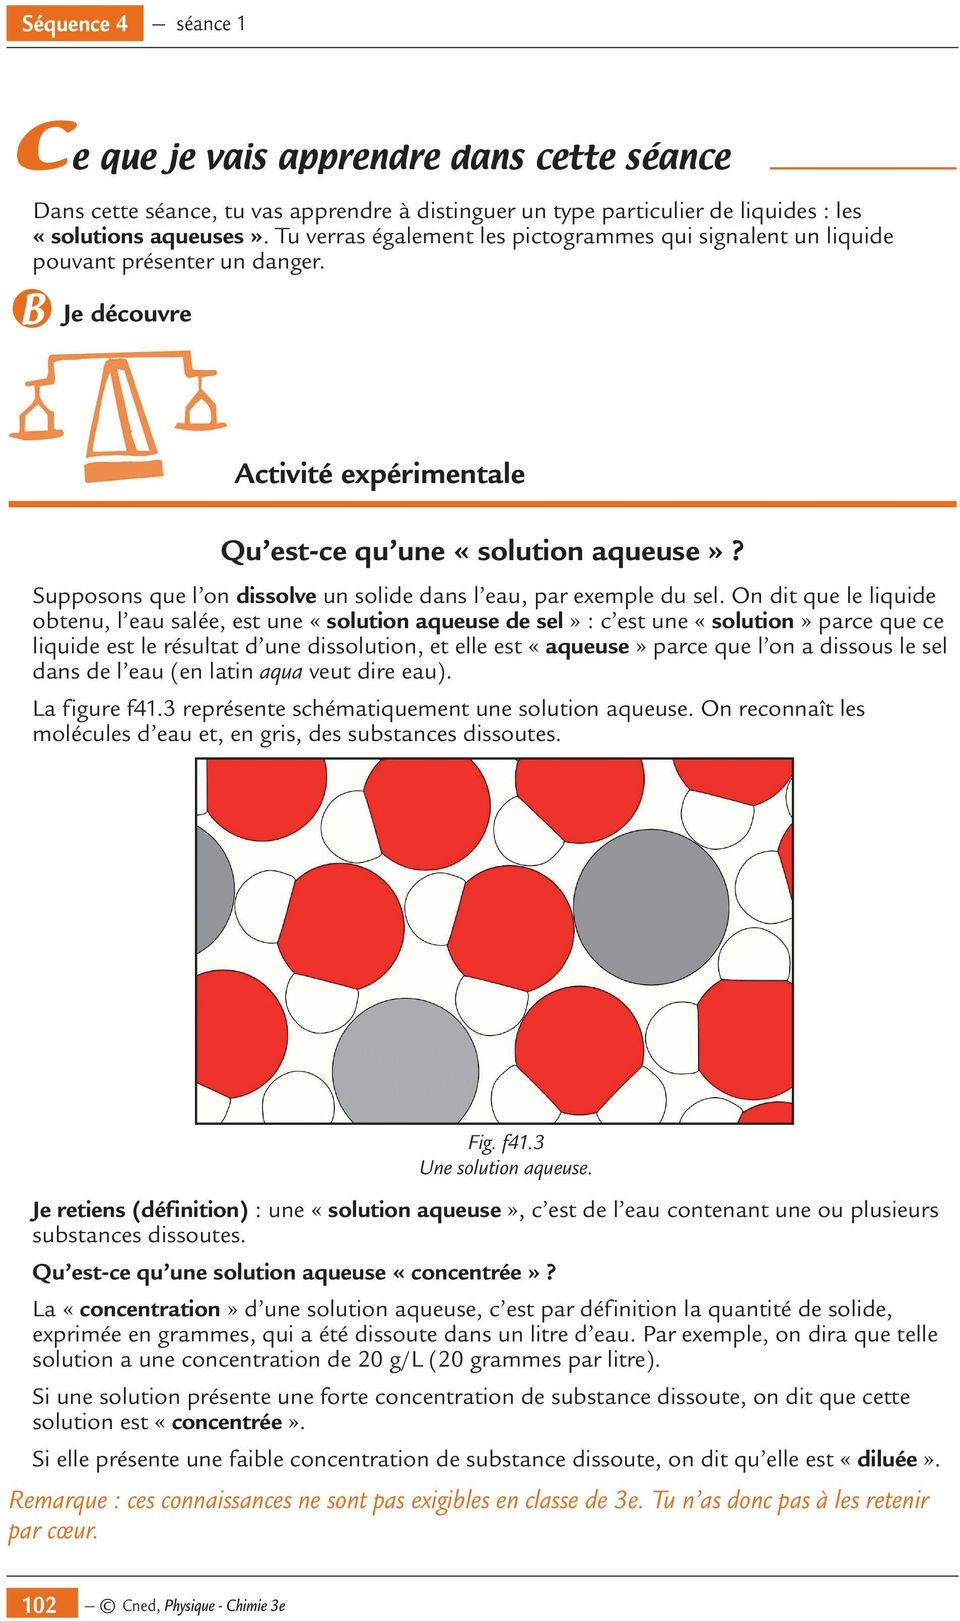 Supposons que l on dissolve un solide dans l eau, par exemple du sel.